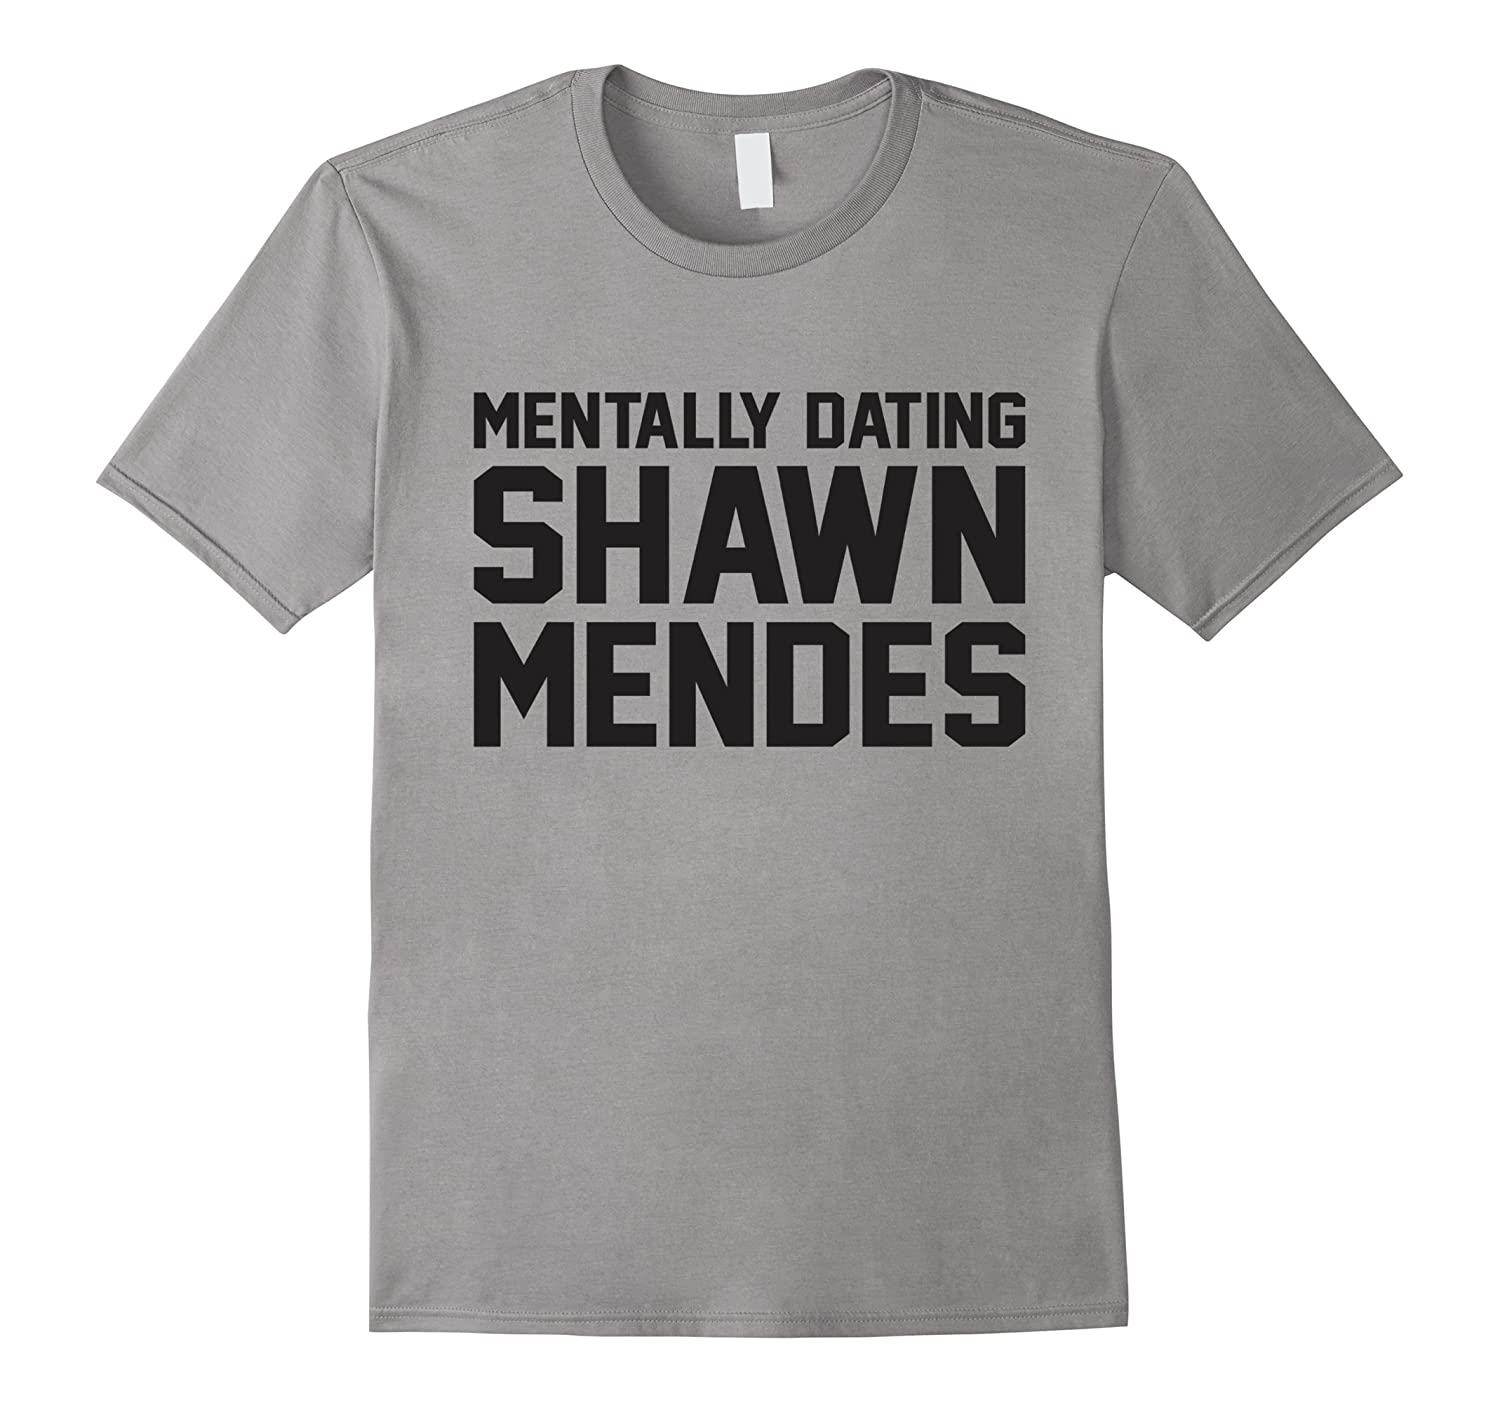 Mentally dating-Shawn-Mendes- Funny t-shirt-Art